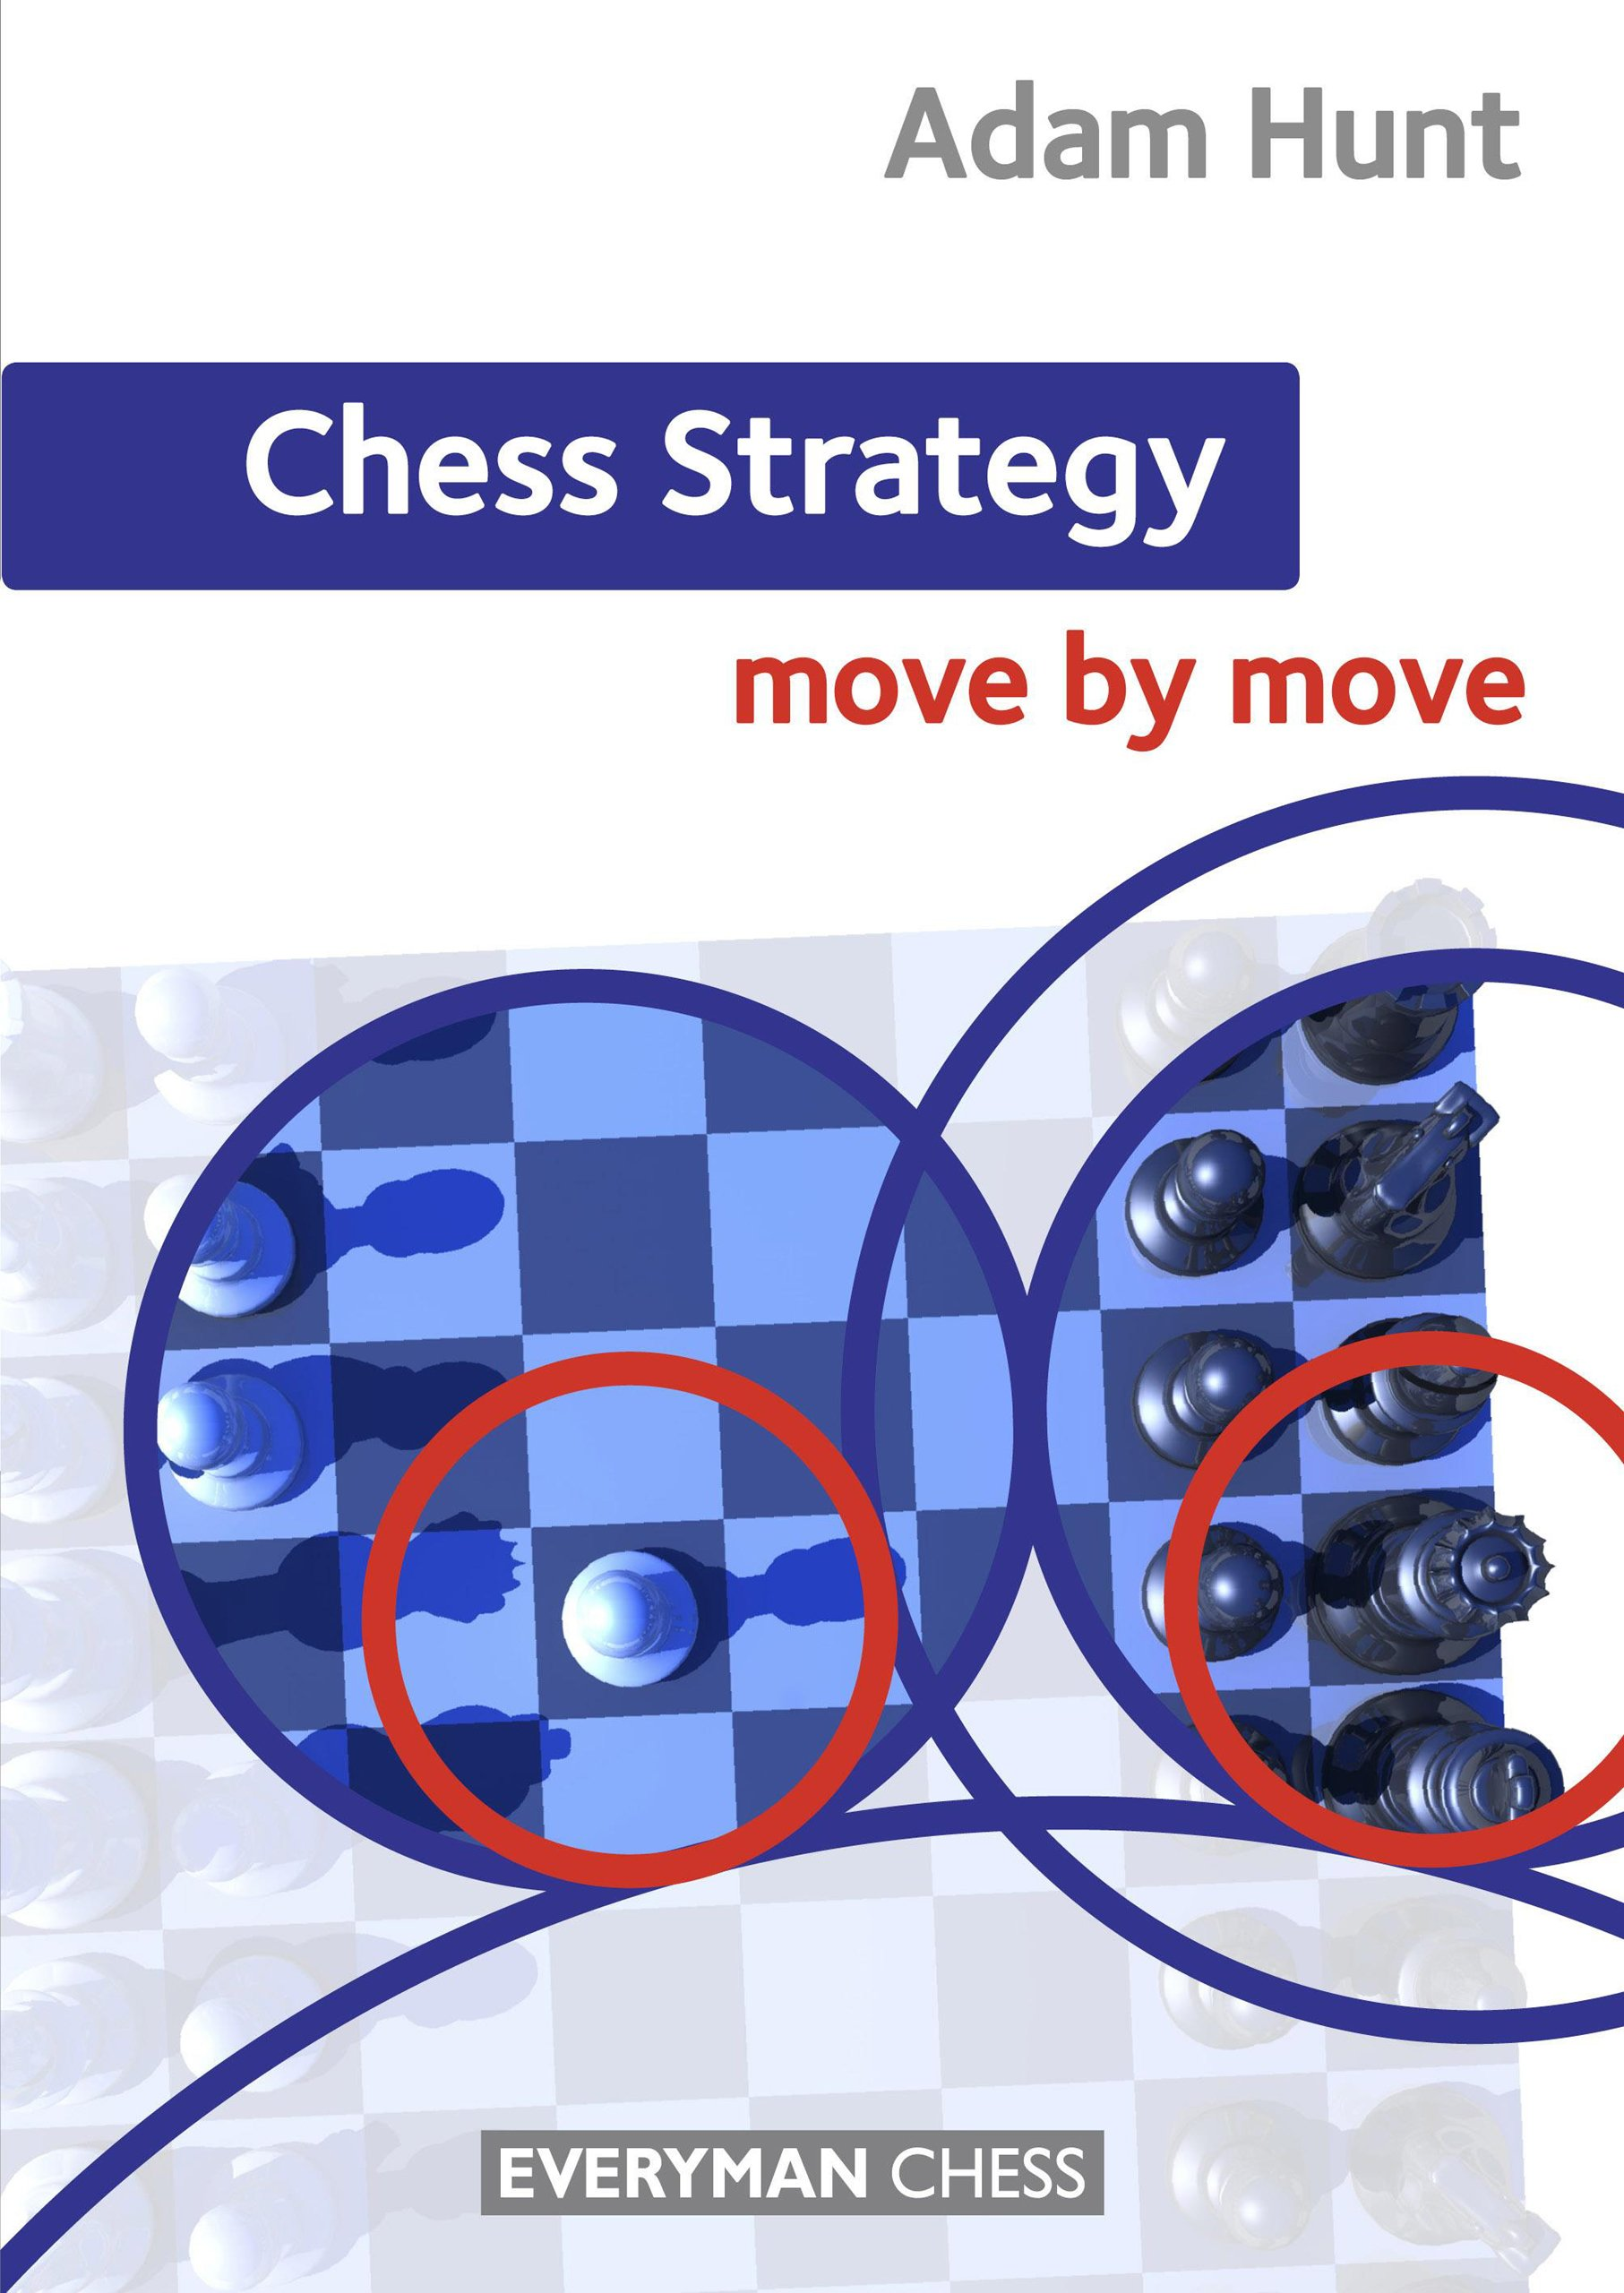 Chess Strategy: Move by Move, Adam Hunt, Everyman, 2013